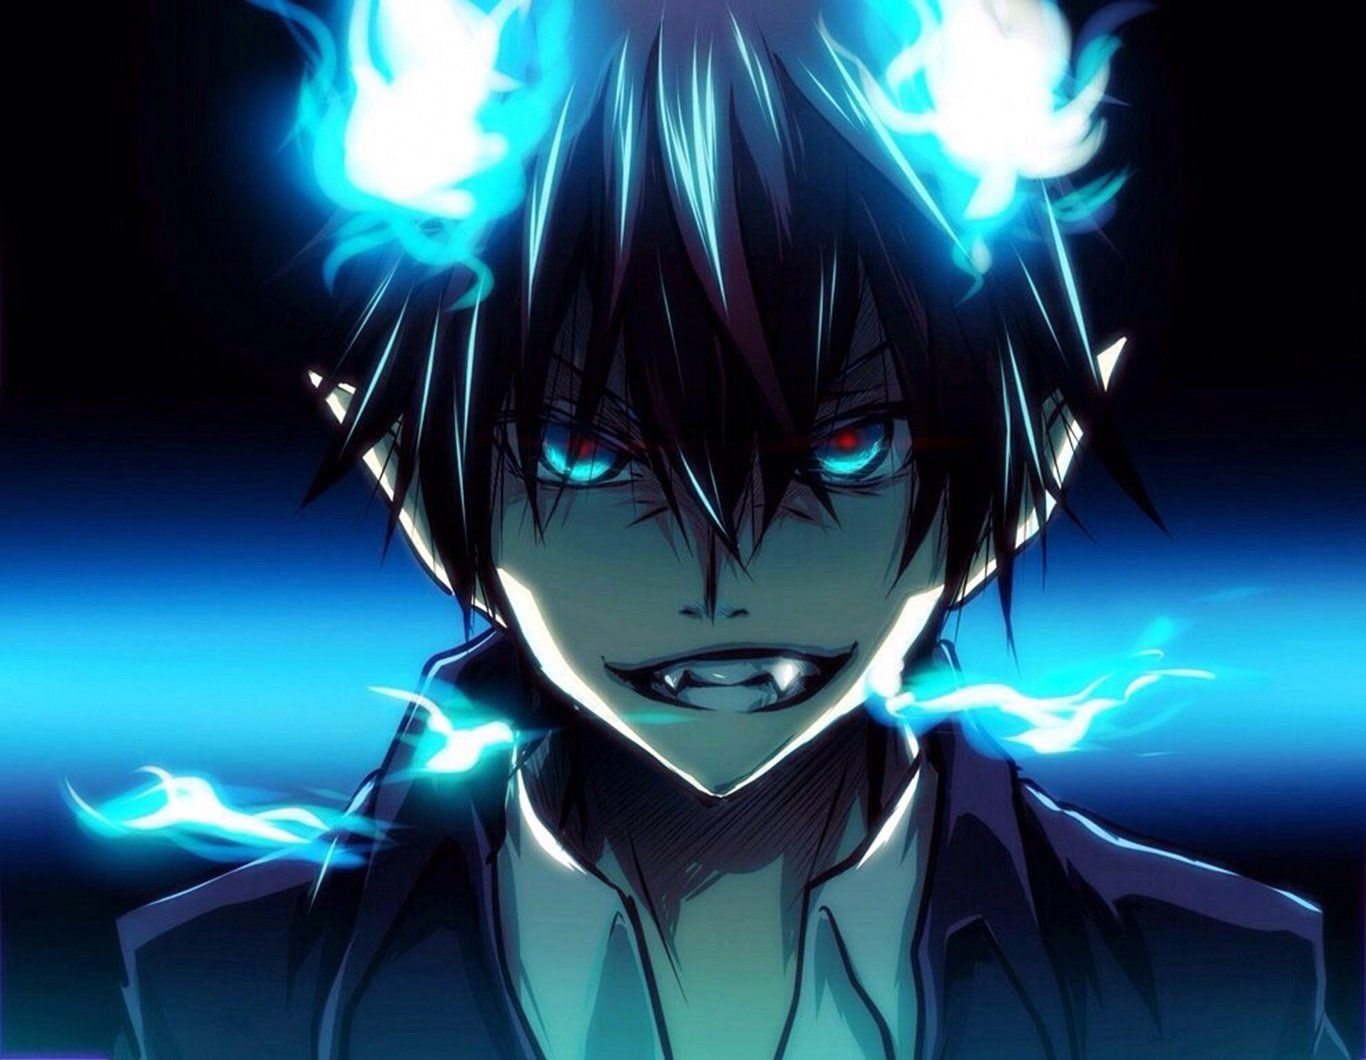 Anime Blue Exorcist Rin Okumura Ao No Exorcist Wallpaper